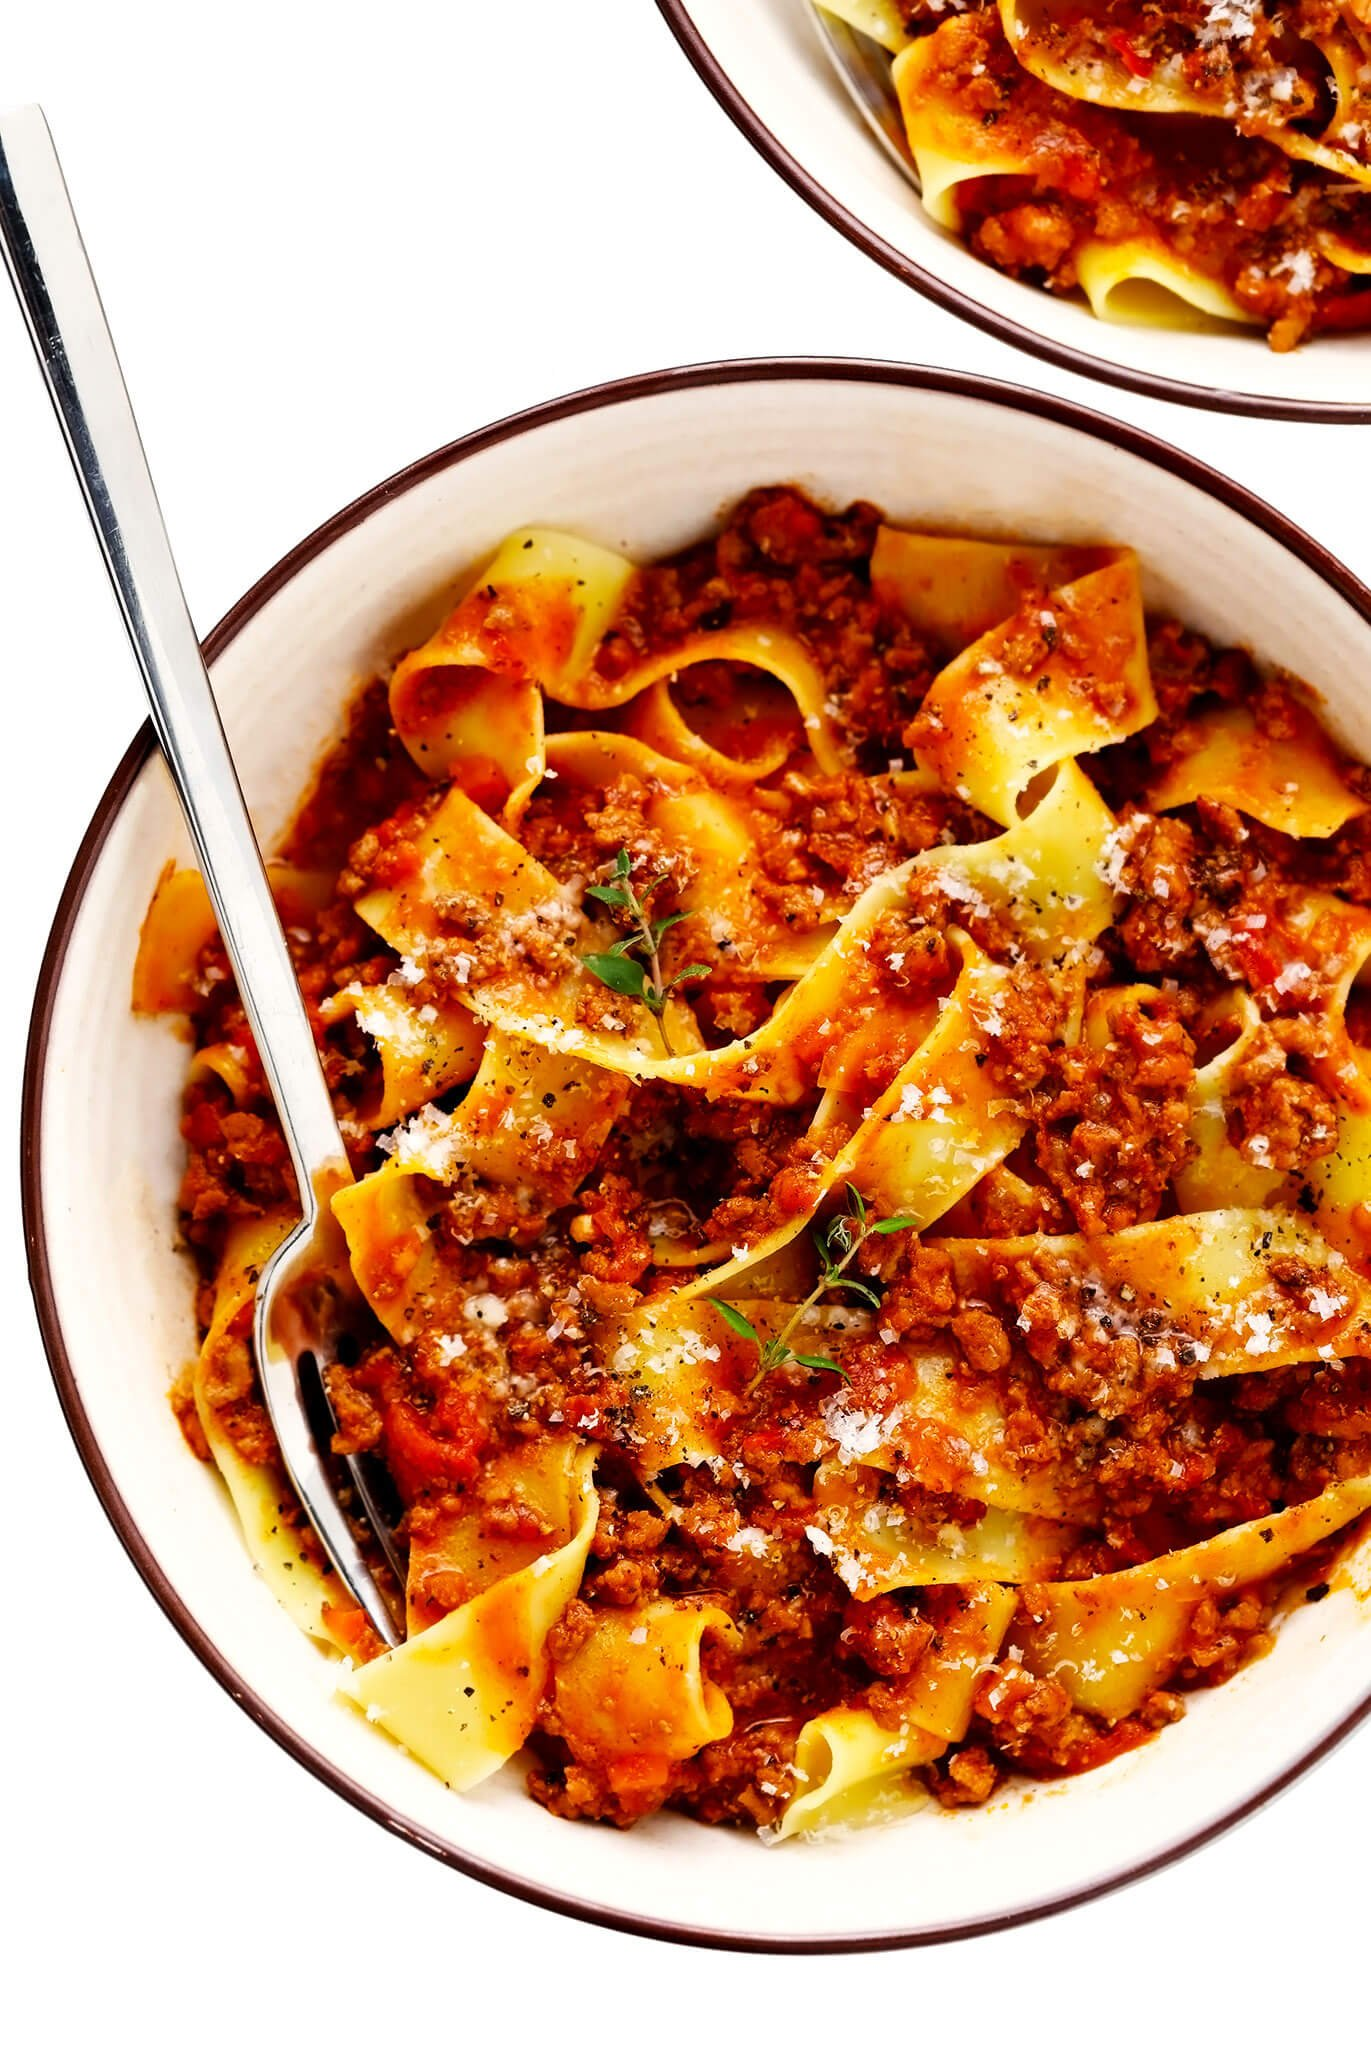 Pasta Bolognese with Pappardelle